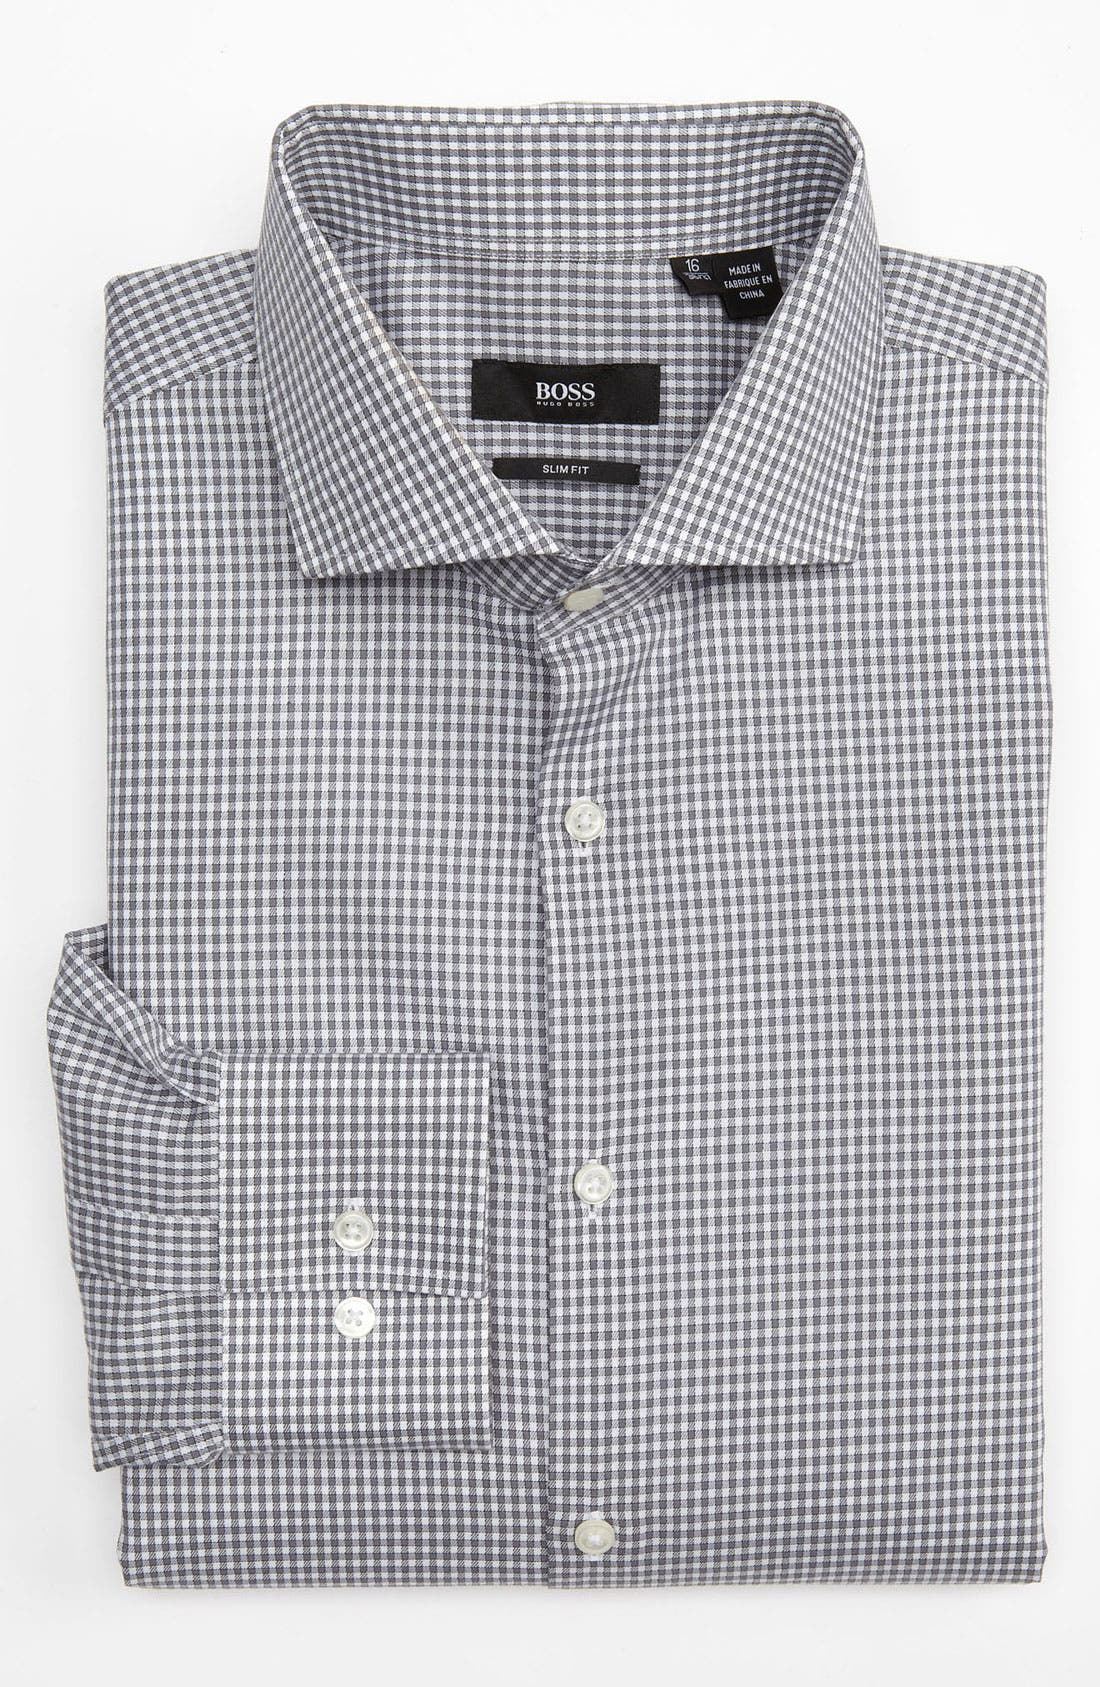 Alternate Image 1 Selected - BOSS Black Slim Fit Dress Shirt (Online Exclusive)